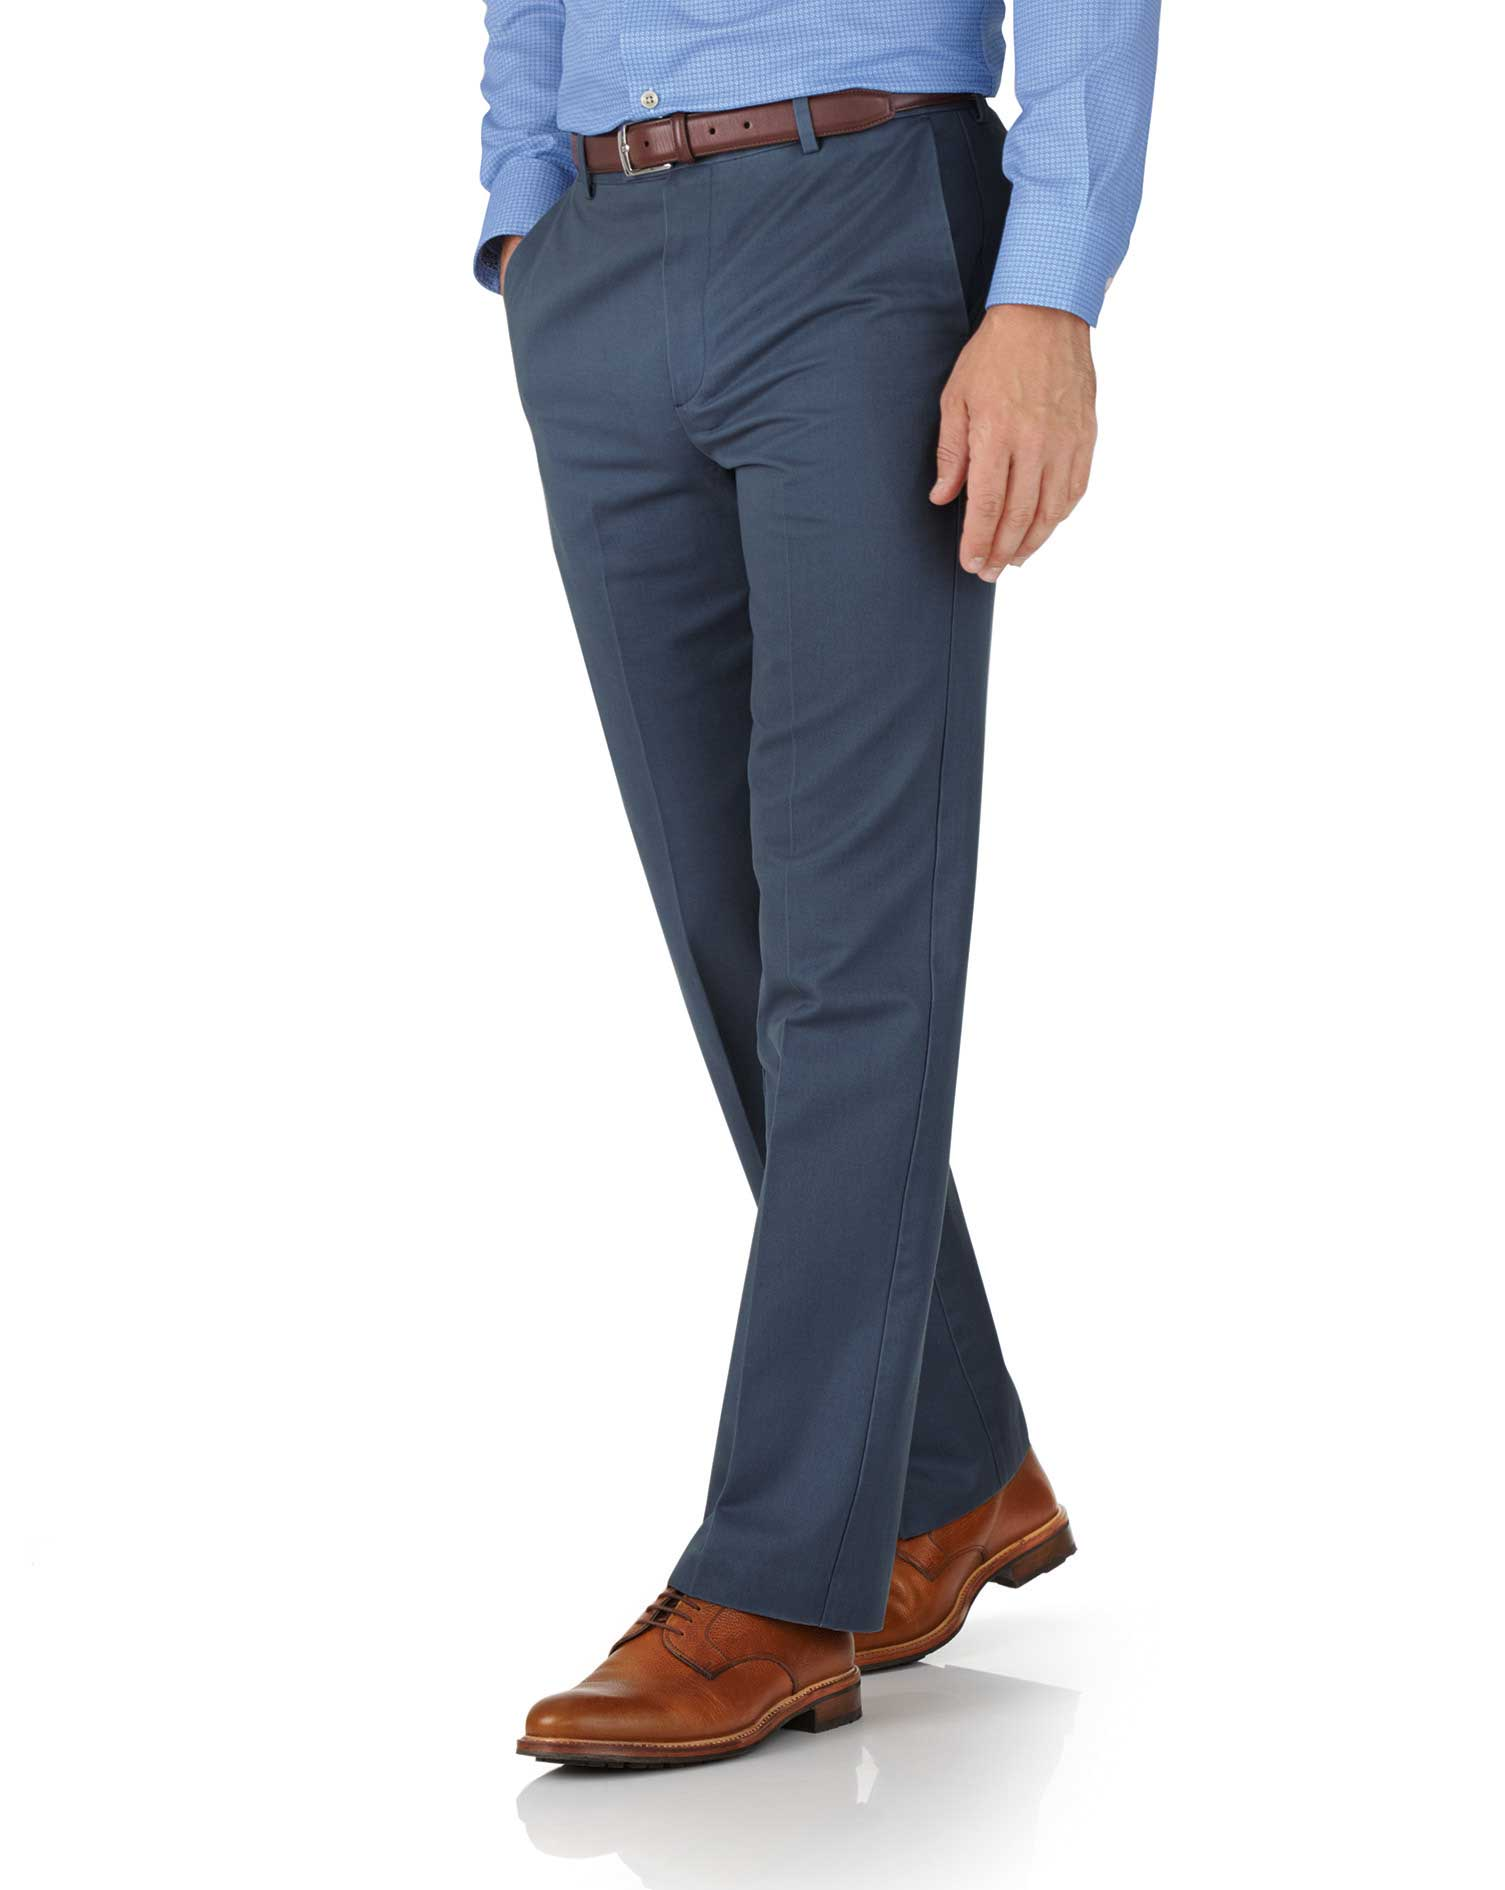 Airforce Blue Classic Fit Flat Front Non-Iron Cotton Chino Trousers Size W34 L29 by Charles Tyrwhitt